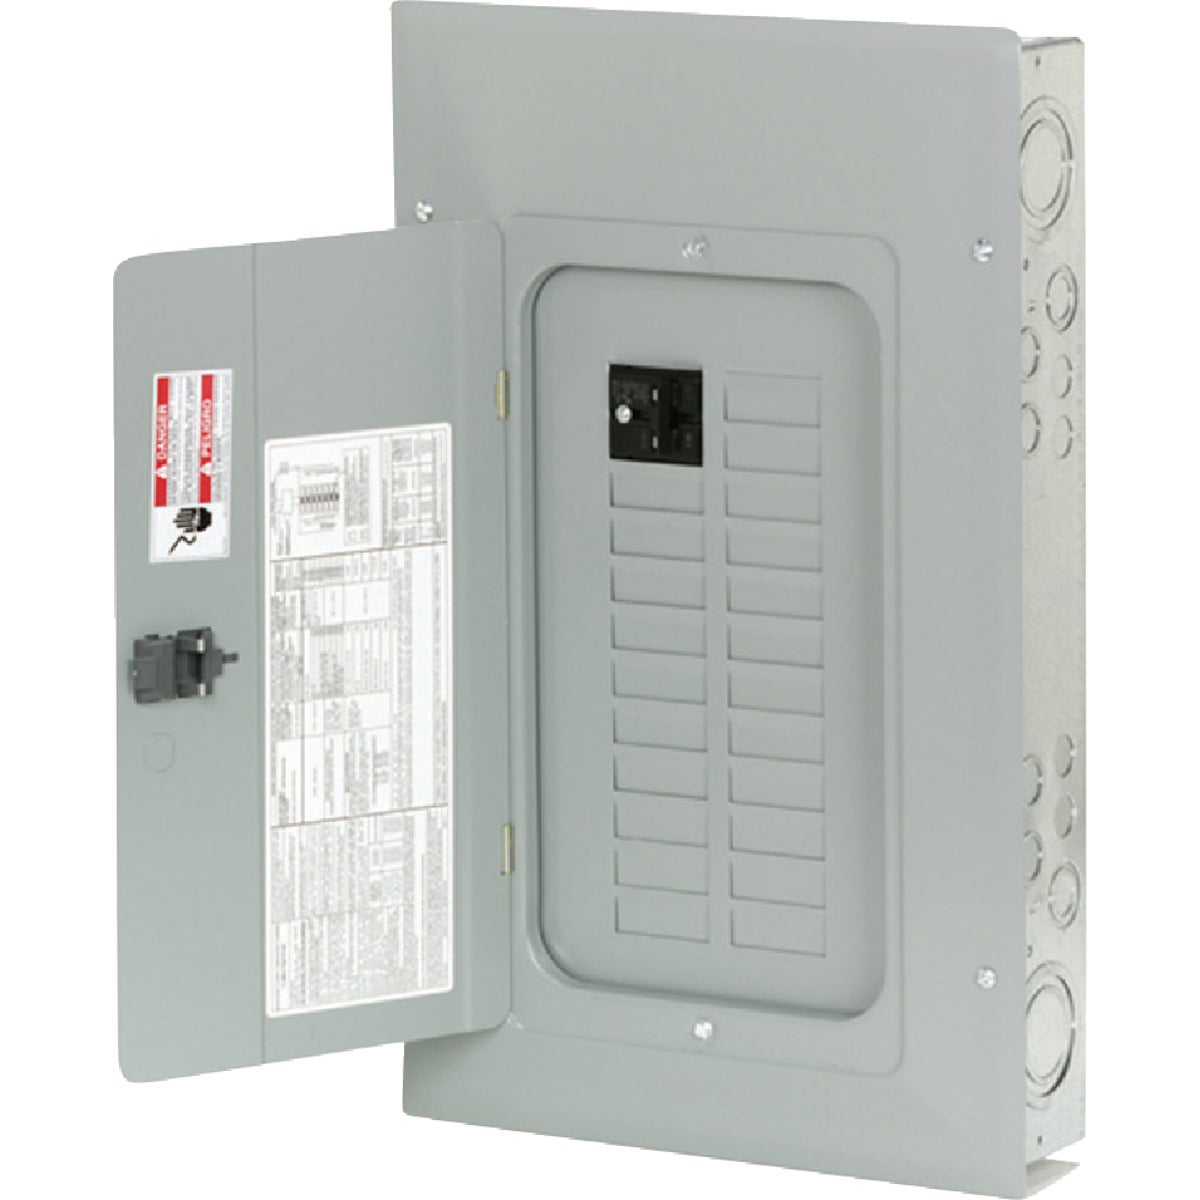 100A LOAD CENTER - BR1620B100 by Eaton Corporation